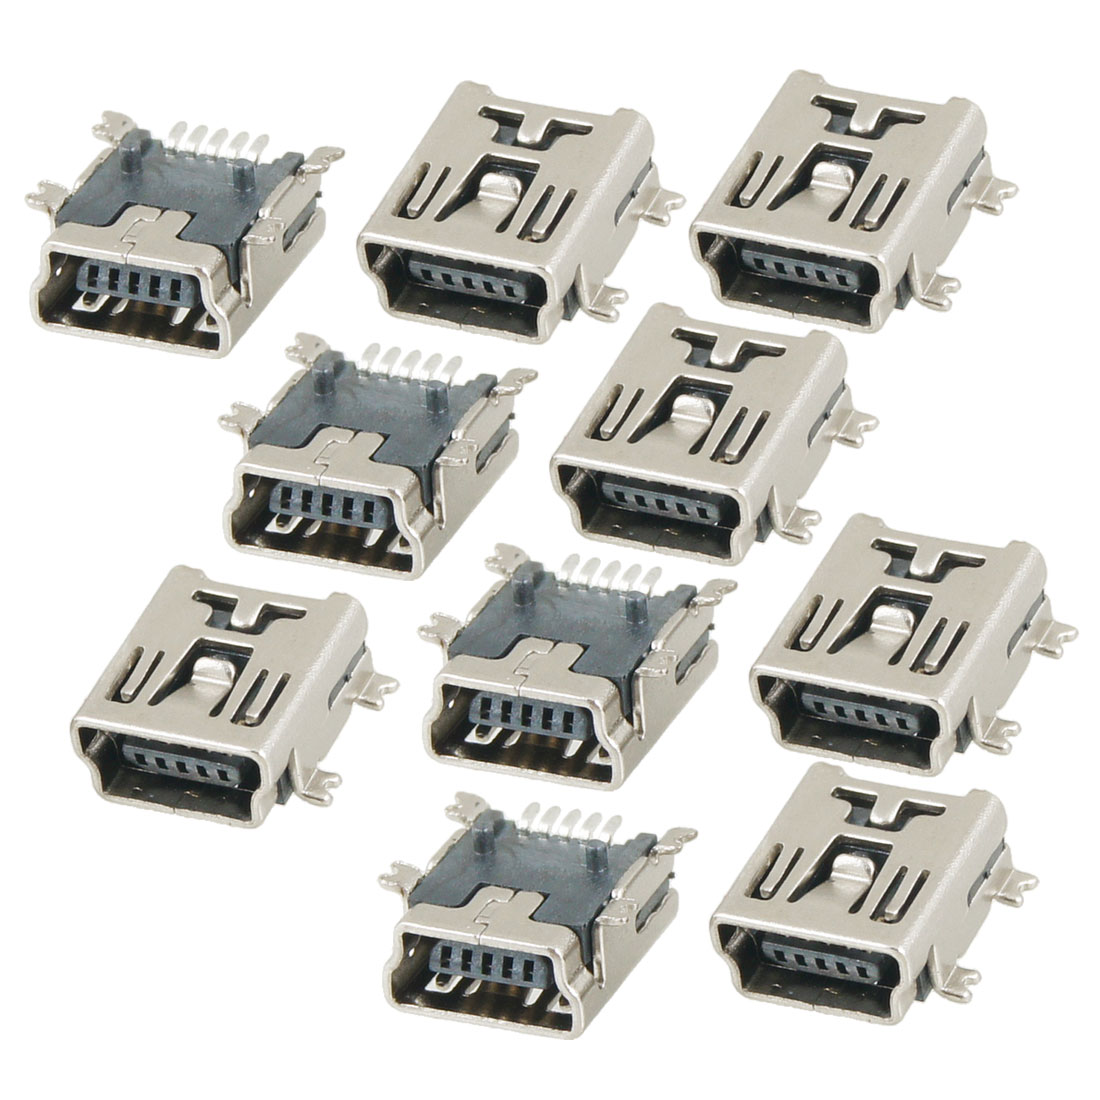 10 Pcs DIY Mini USB 5-Pin Female SMT Socket Connector Silver Tone